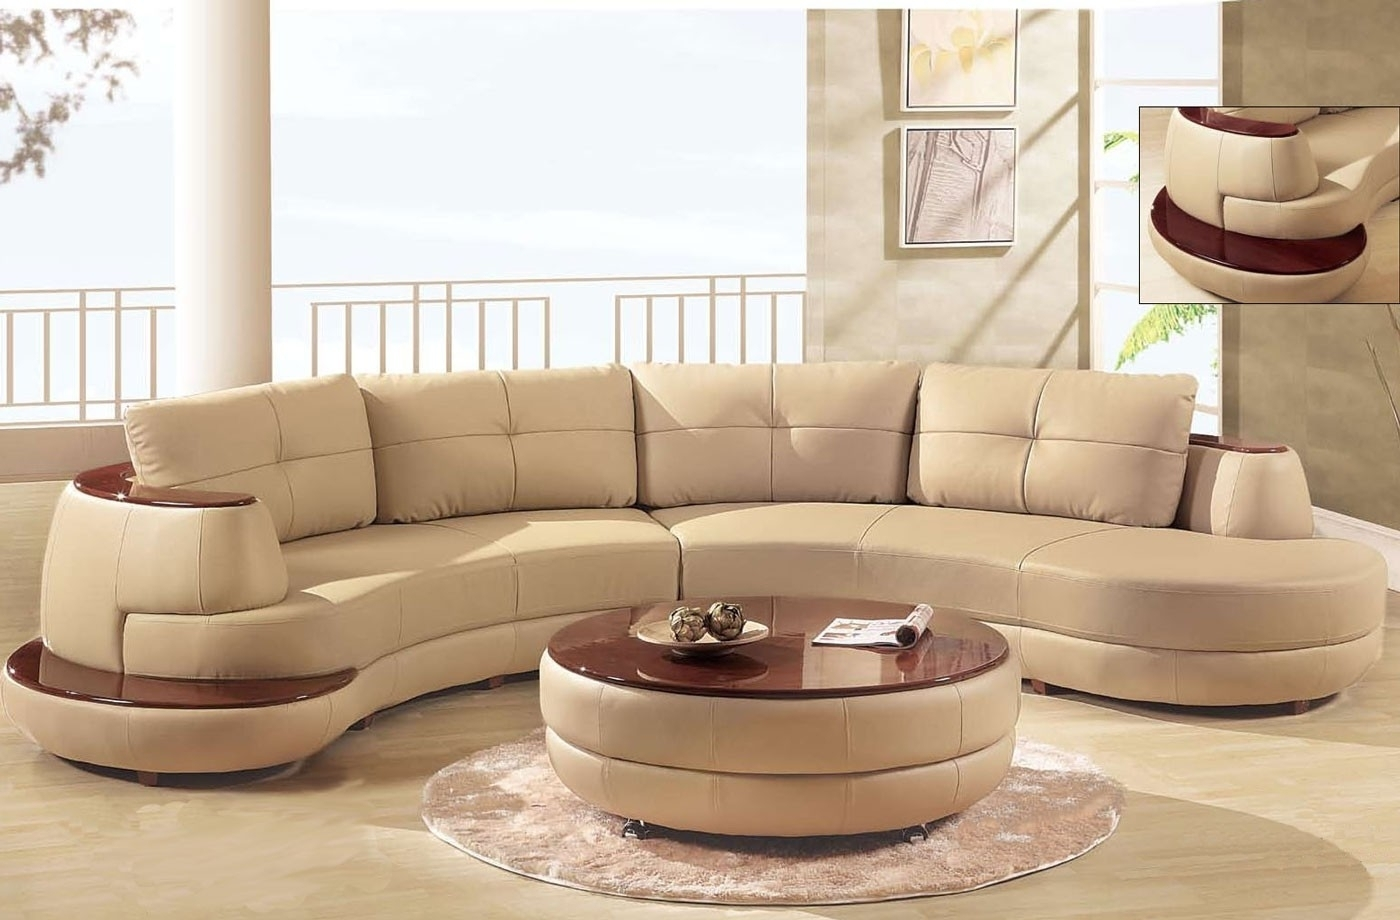 Cheap Sofas Under 200 - Mforum within Sectional Sofas Under 200 (Image 3 of 10)